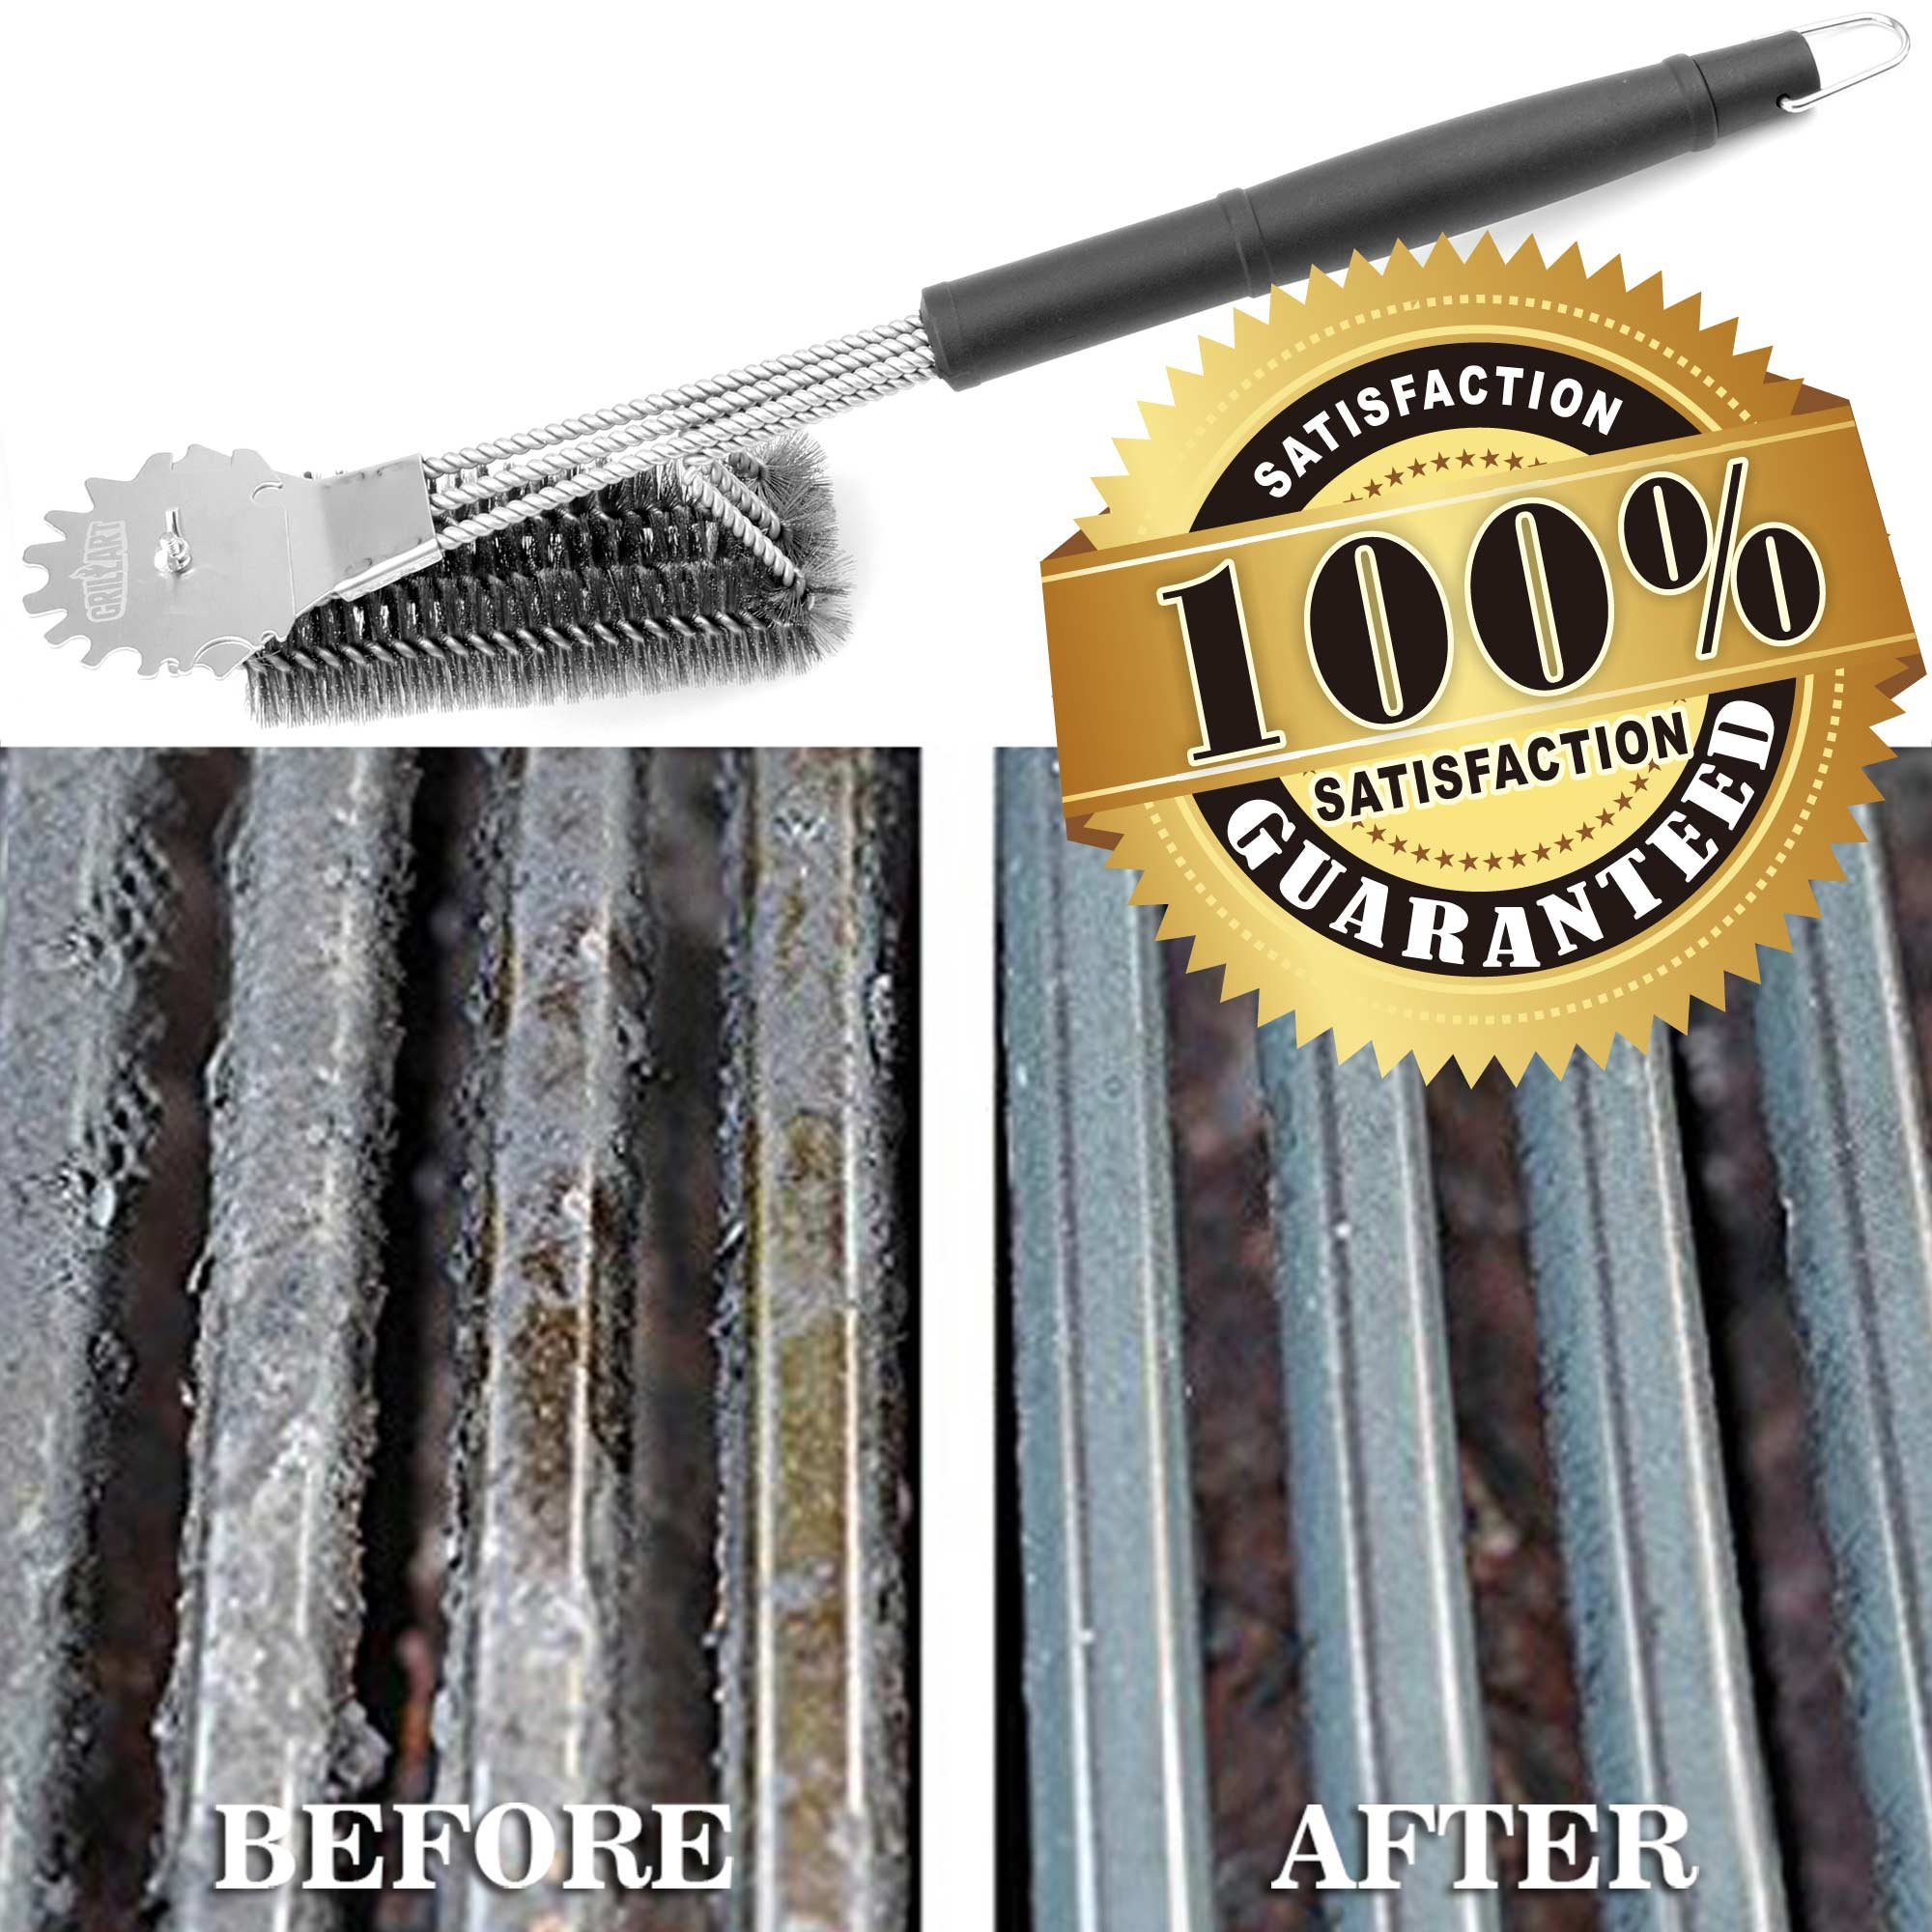 Grill Brush and Scraper Universal Fit - Adjustable BBQ Grill Accessories Cleaning Kit - 12 Grooves Safe 18'' Stainless Steel Barbecue Grill Cleaner Wizard Tools for Weber Gas/Charcoal Grilling Grates by GriIIArt (Image #7)